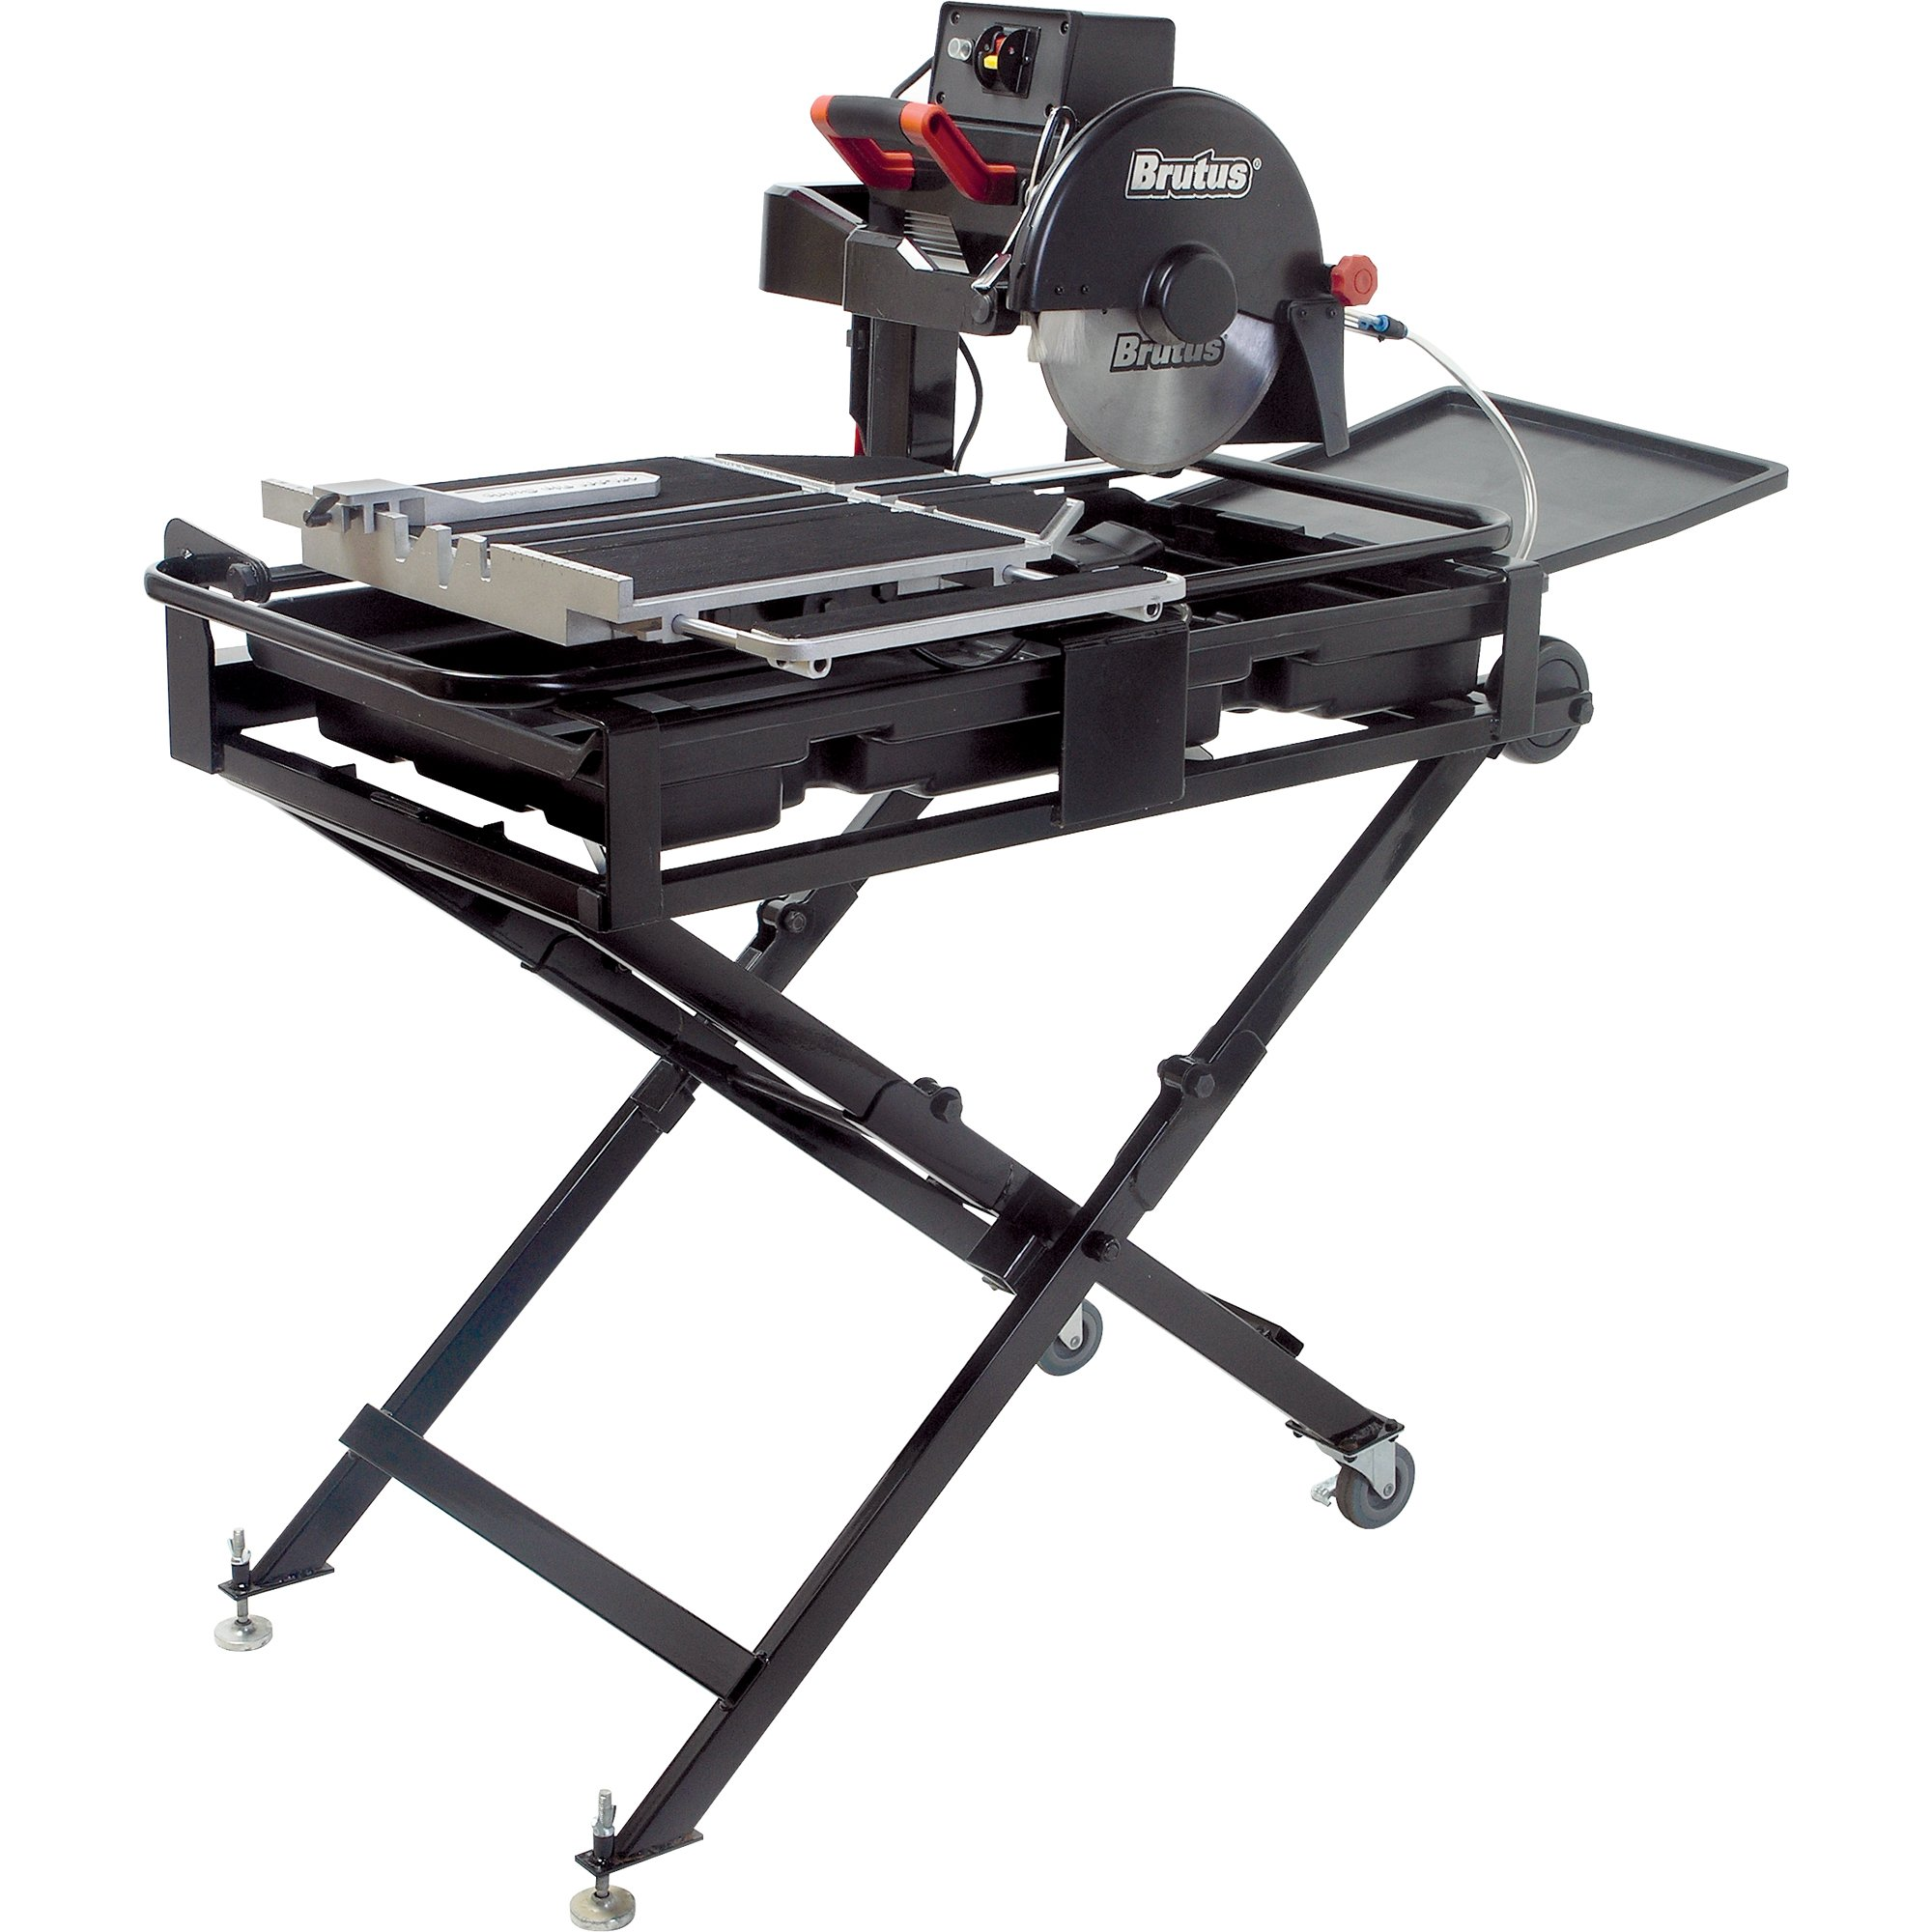 Brutus 61024BR Professional Tile Saw with 10-Inch Diamond Blade, 1-1/2 HP Motor and Stand, 24-Inch by Brutus